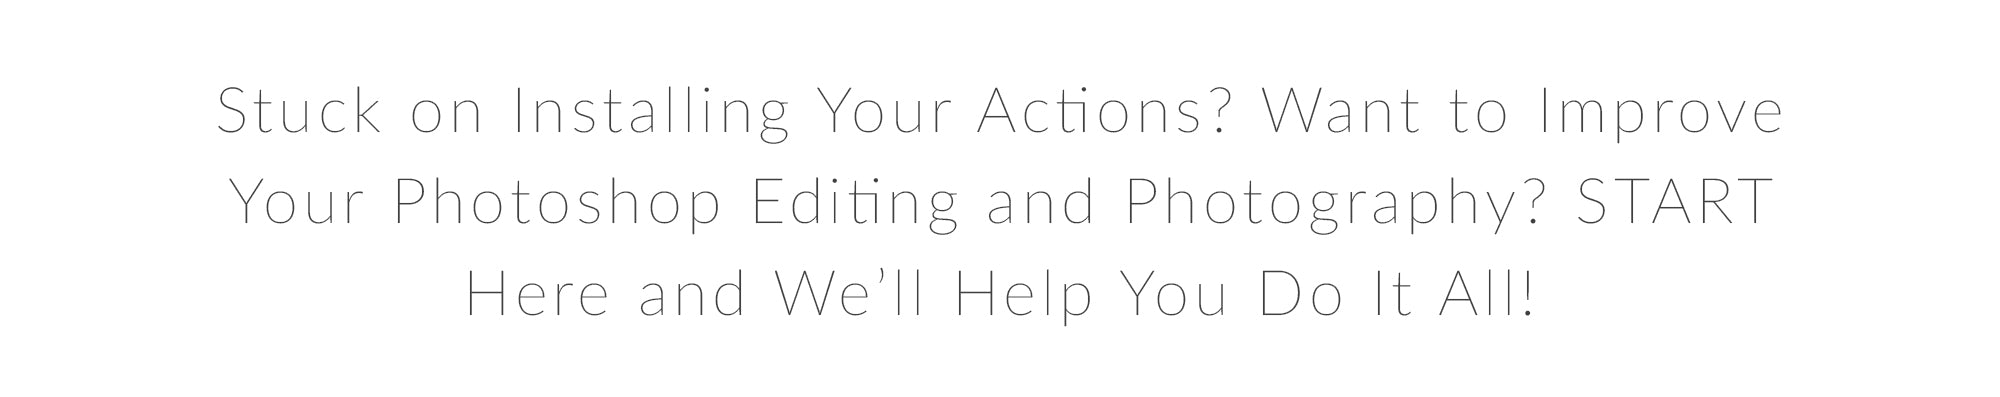 Are You New to Pretty Actions? Start Here! – Pretty Photoshop Actions